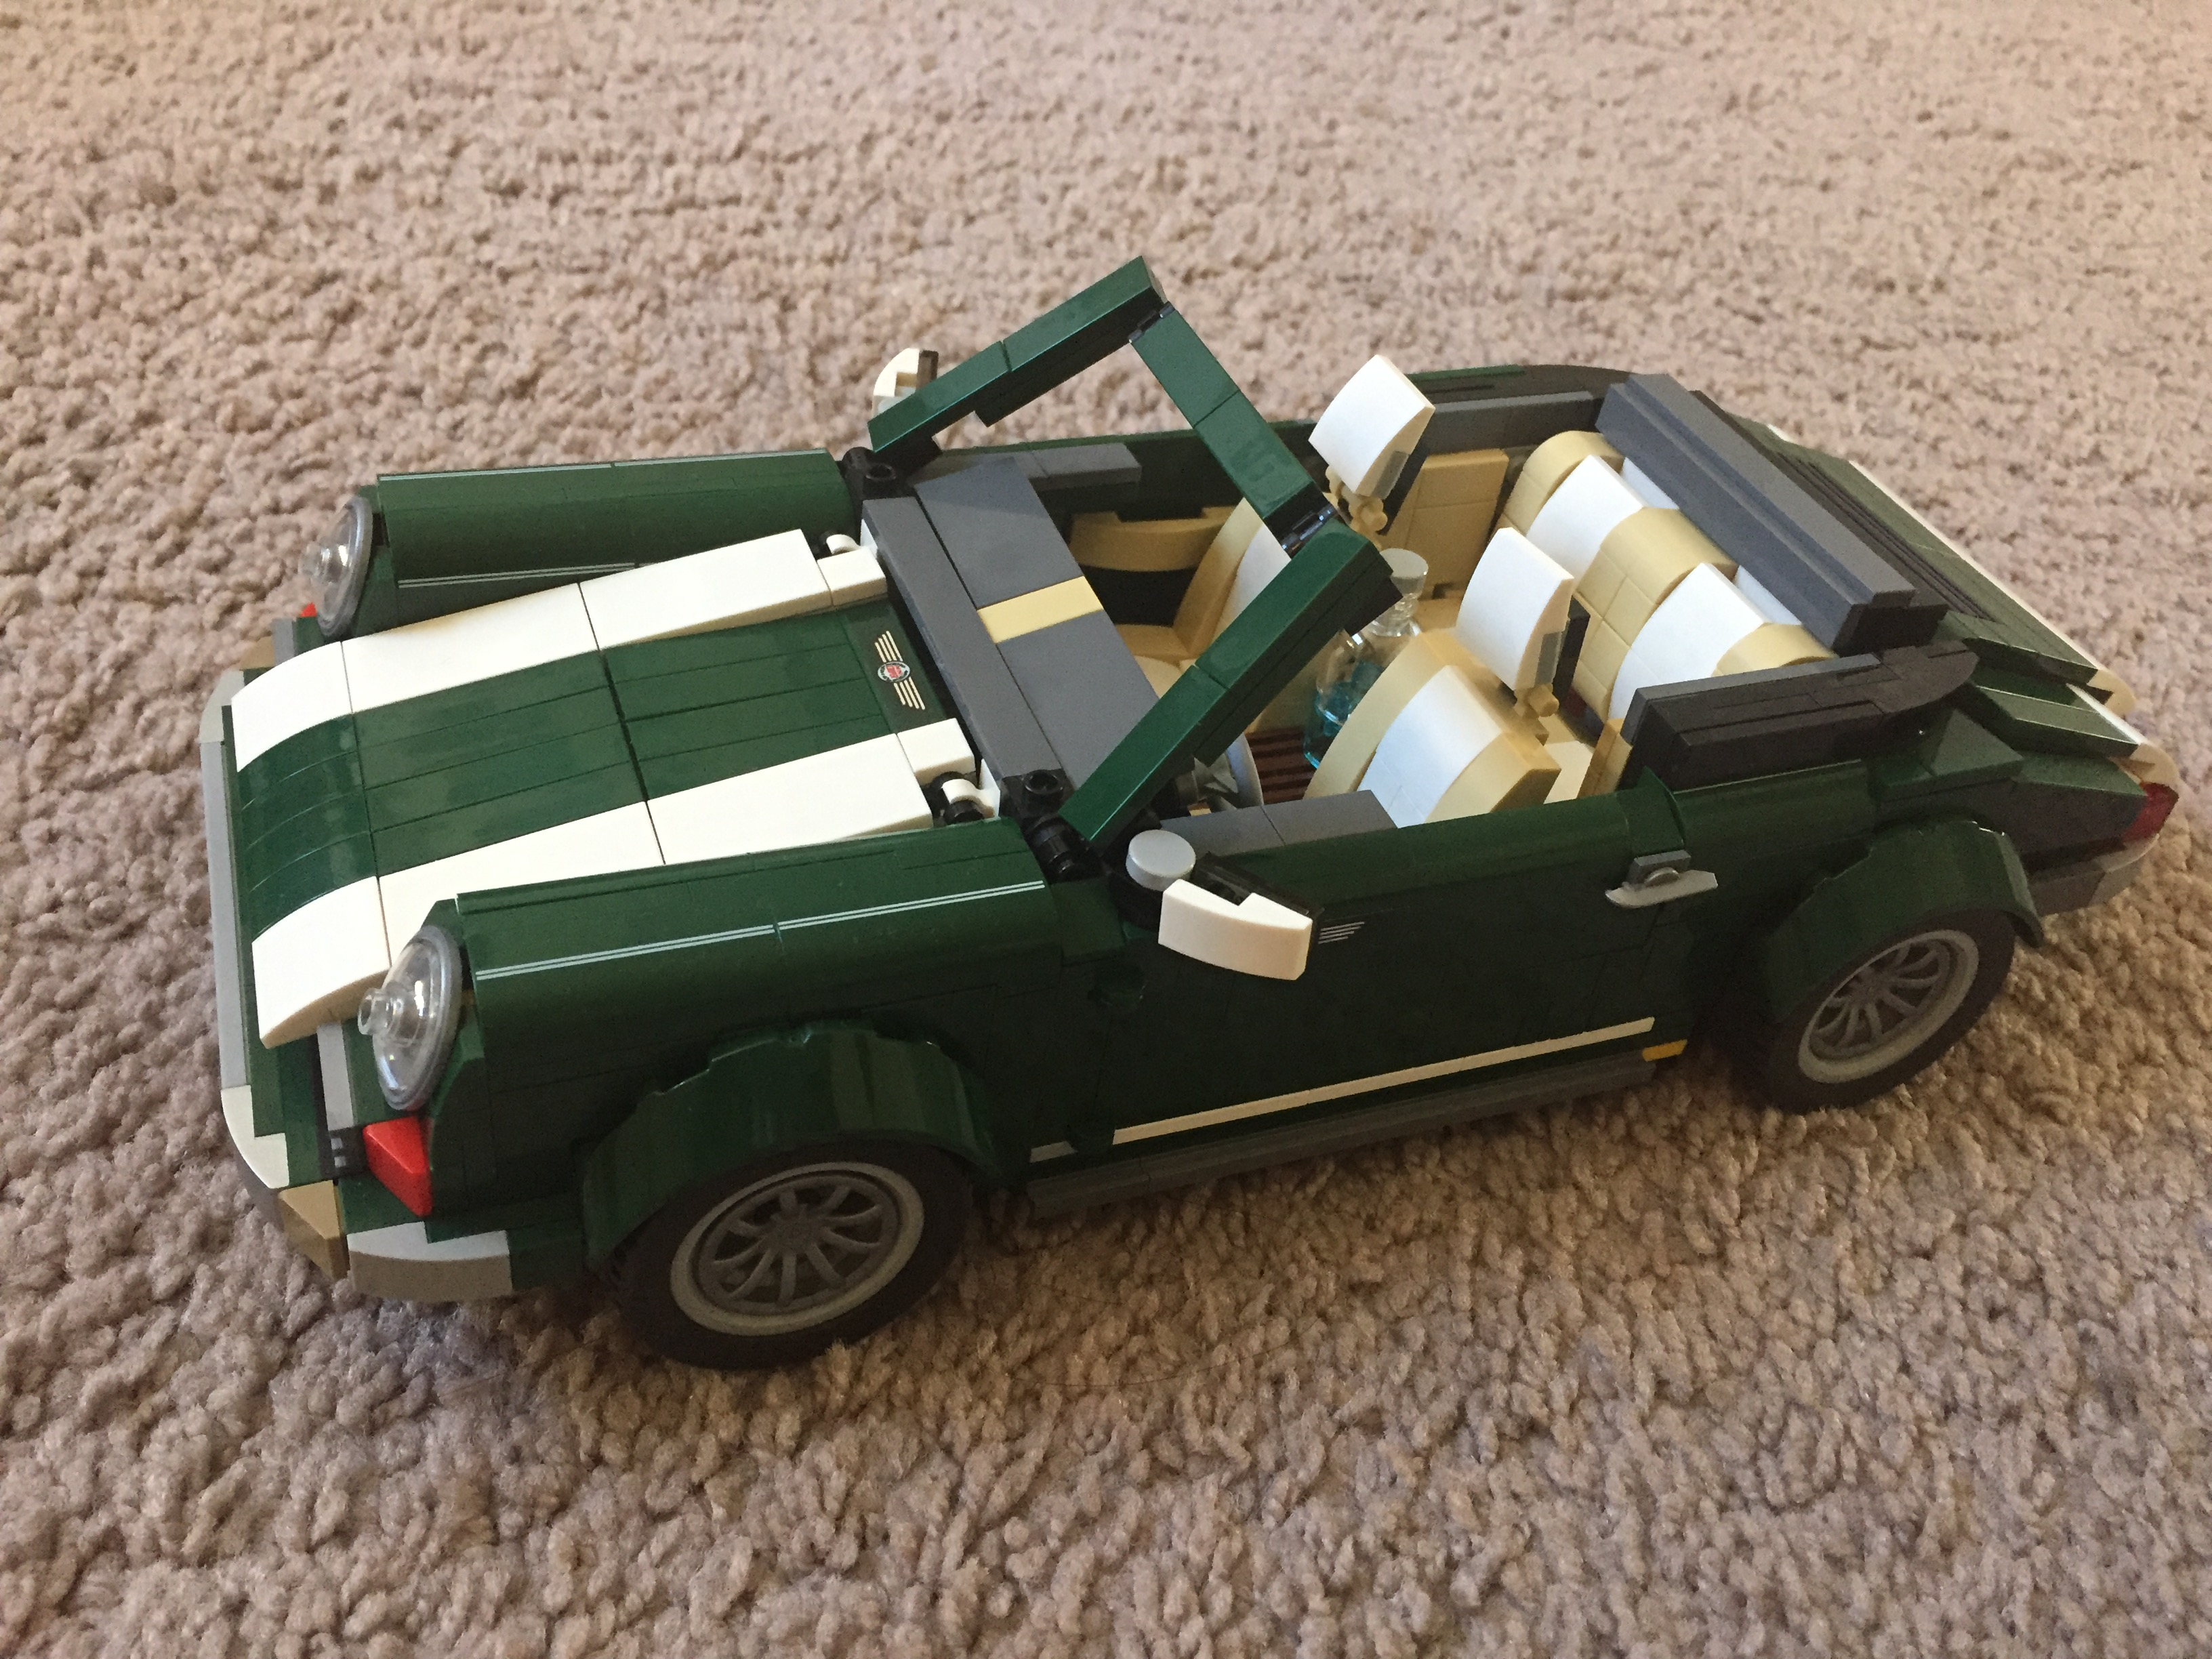 Lego Moc 5043 Porsche Creator 2016 Rebrickable Build With Lego